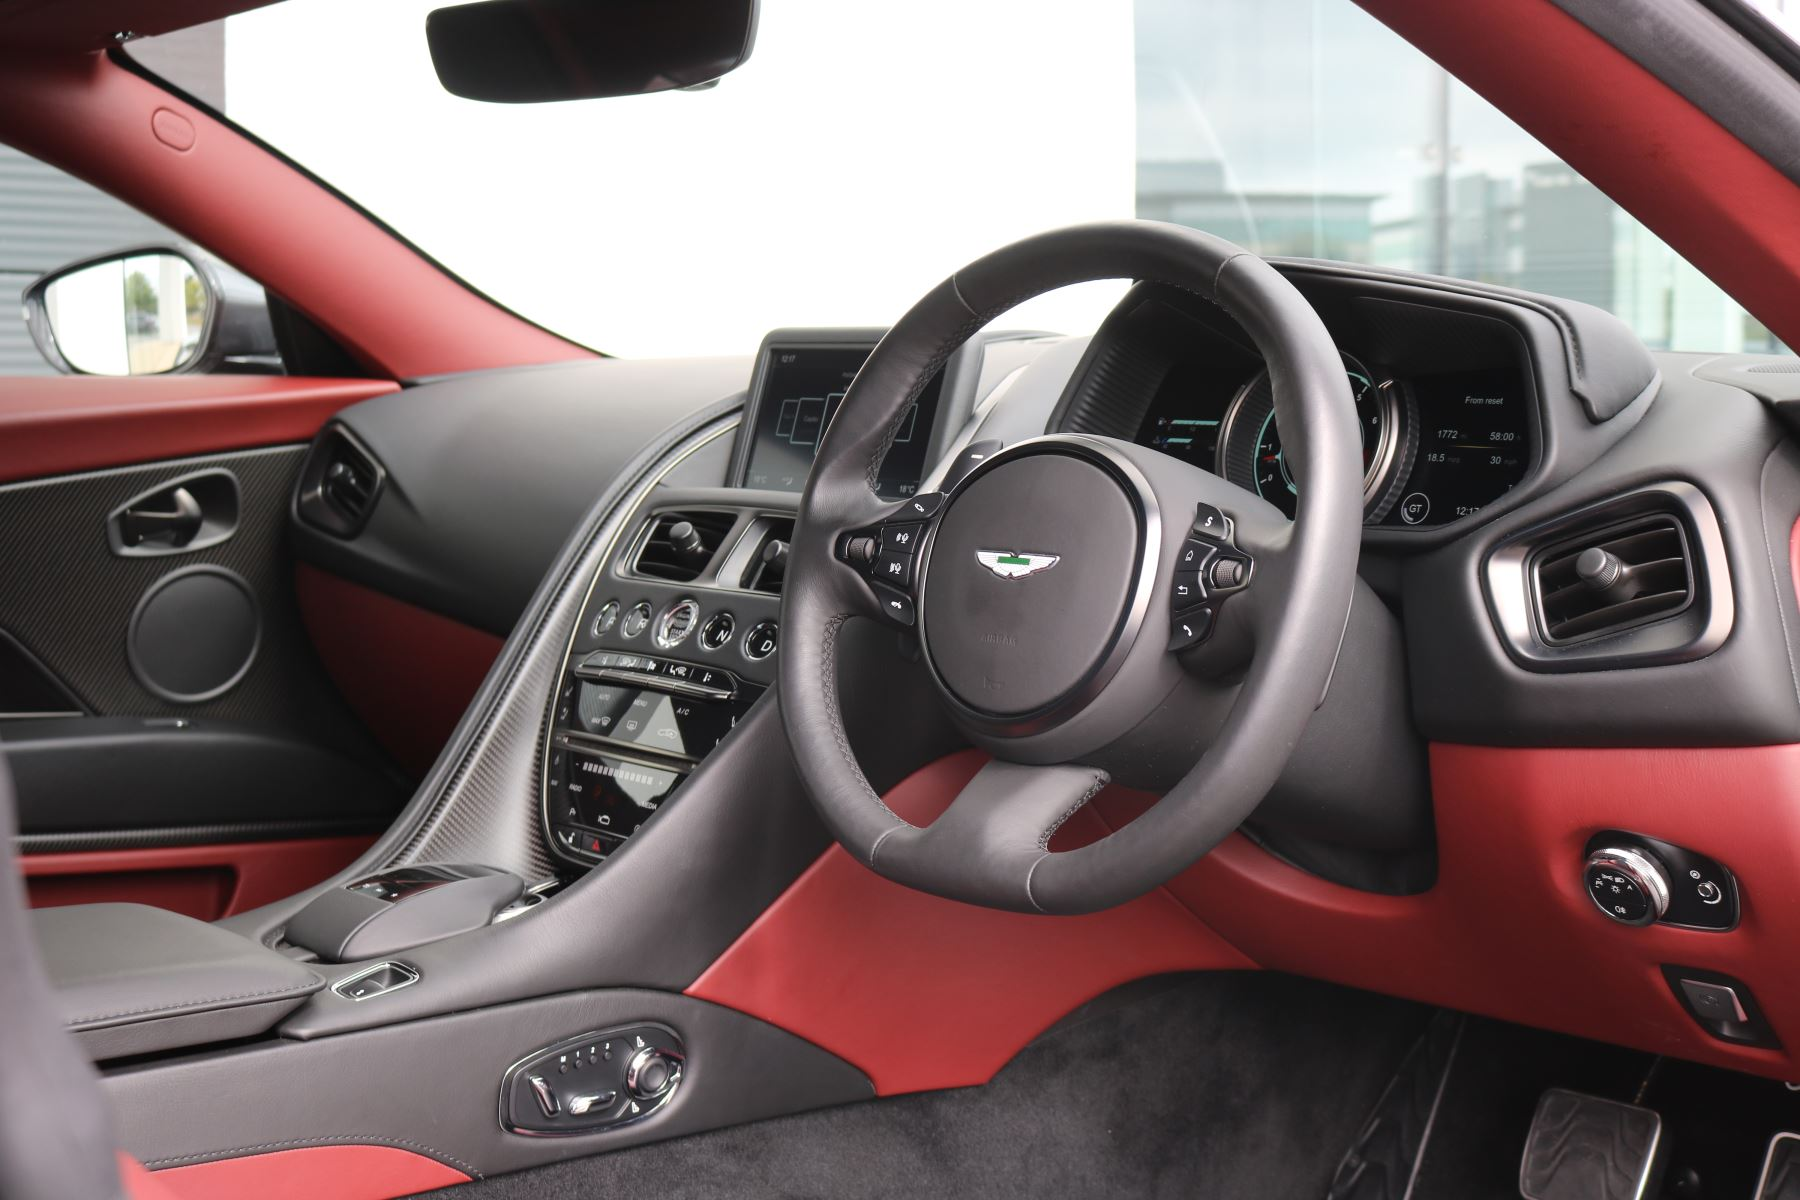 Aston Martin DB11 V12 AMR 2dr Touchtronic FREE SERVICING  image 39